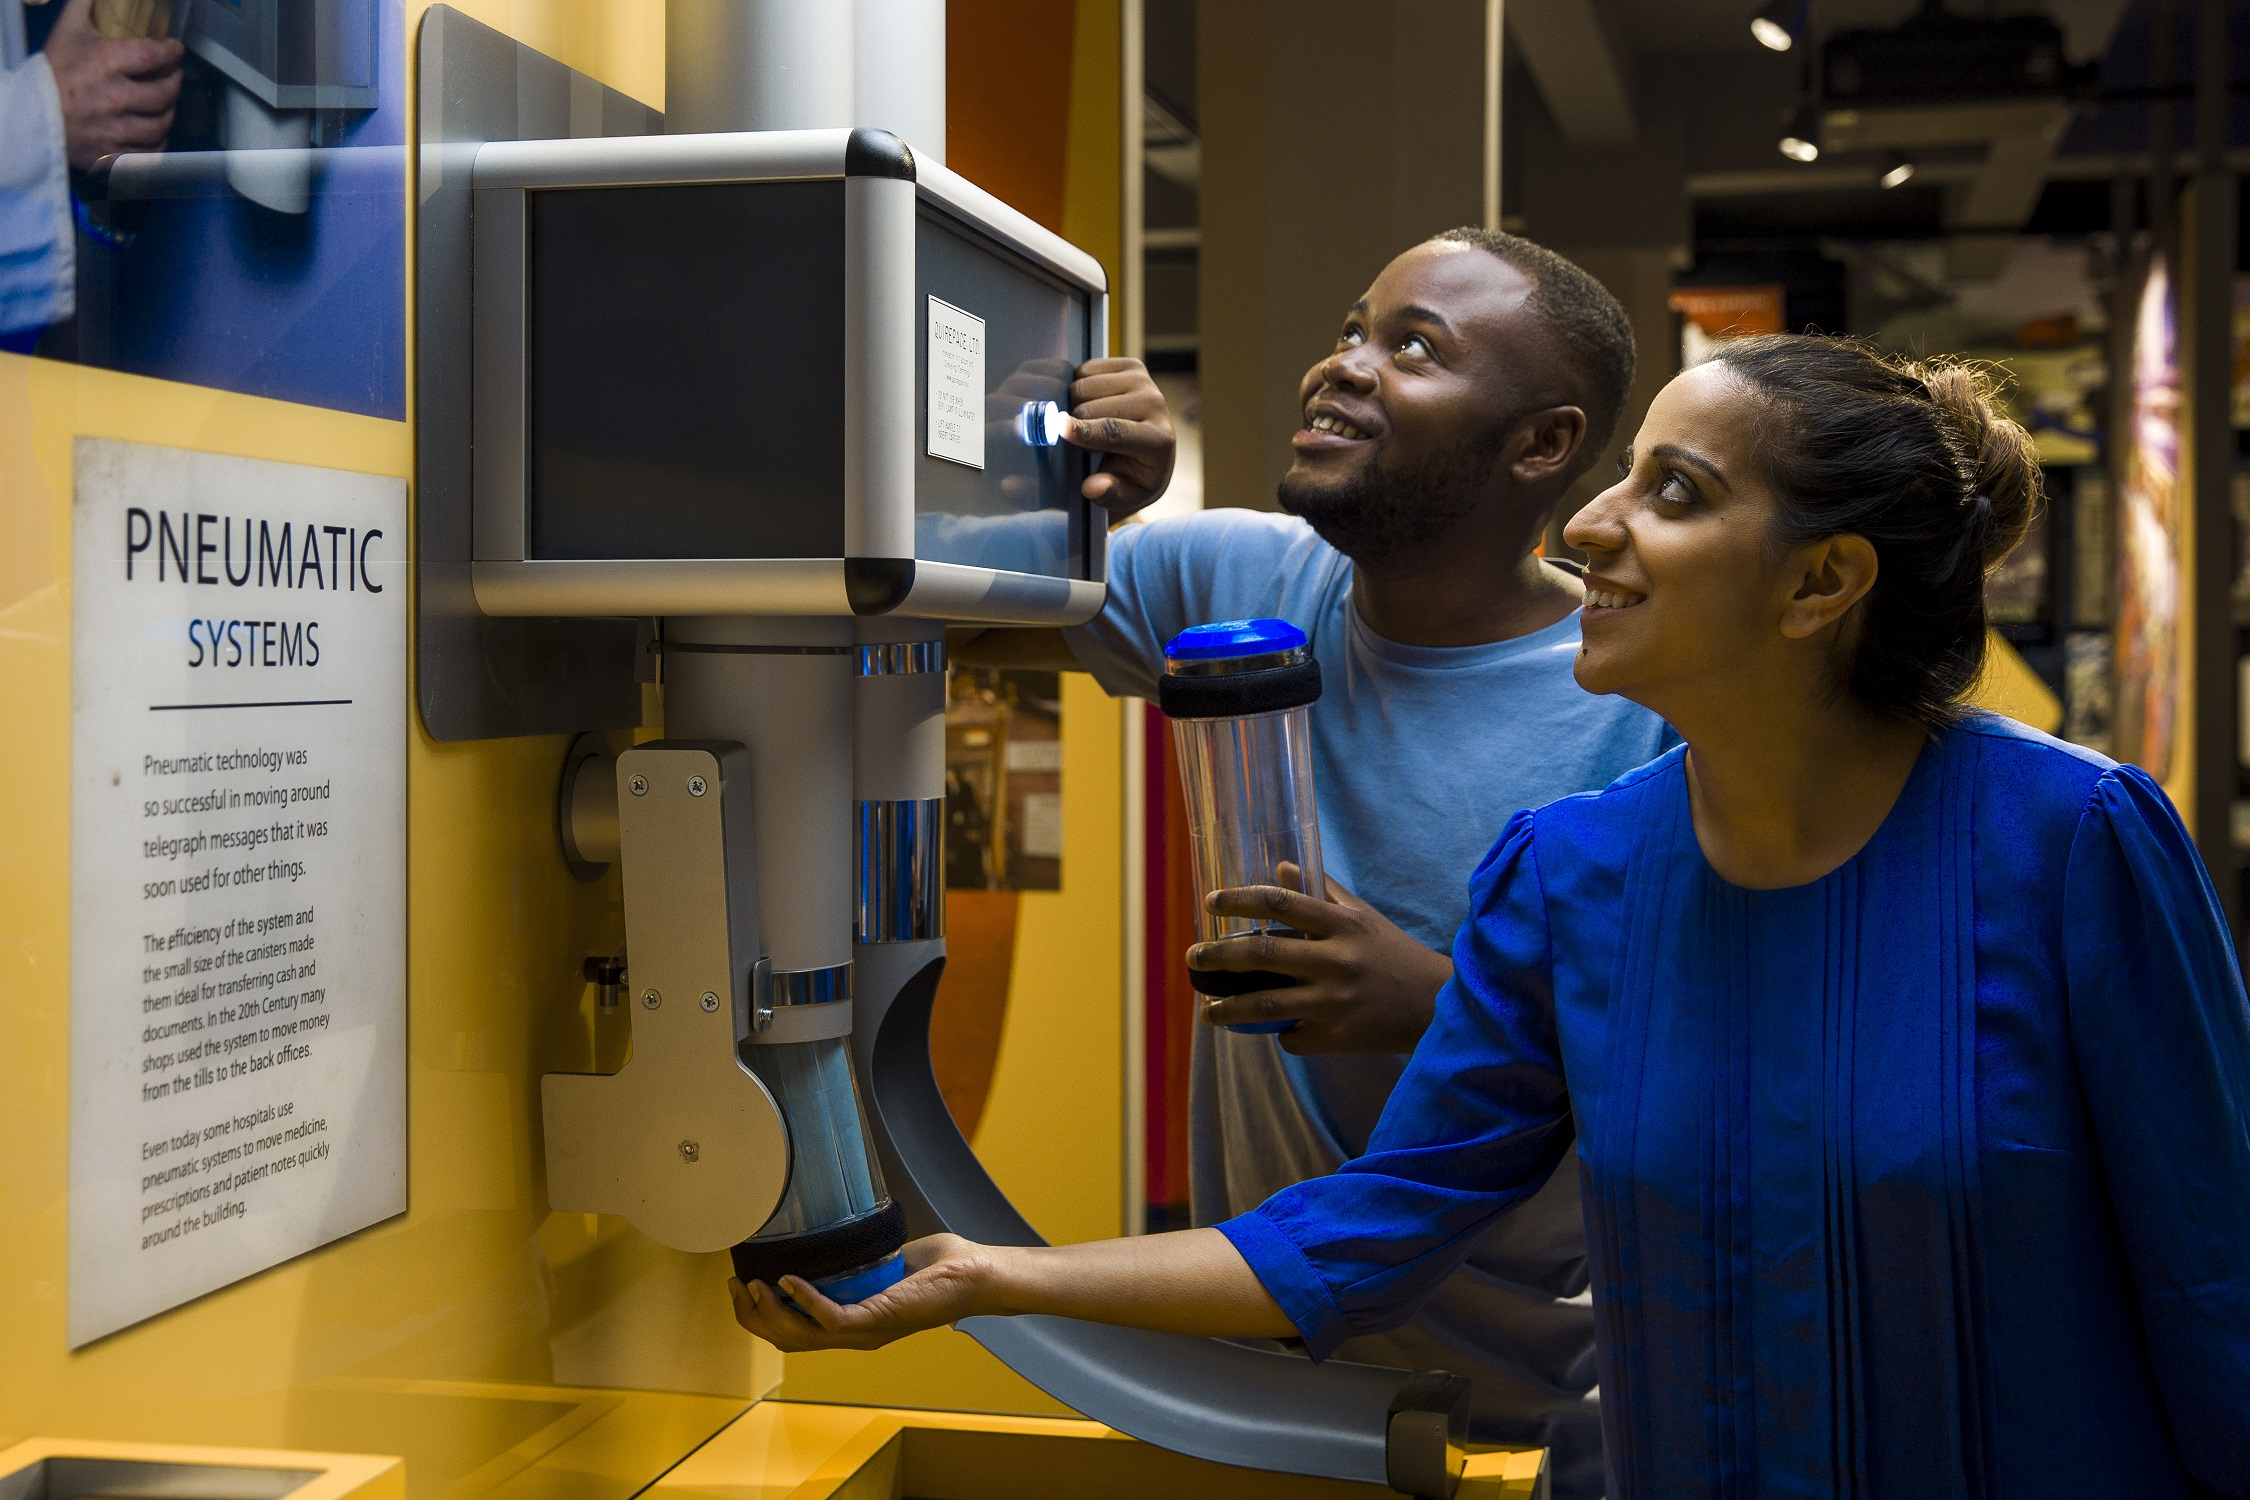 Visitors can send a pneumatic message from one side of the postal museum to the other.